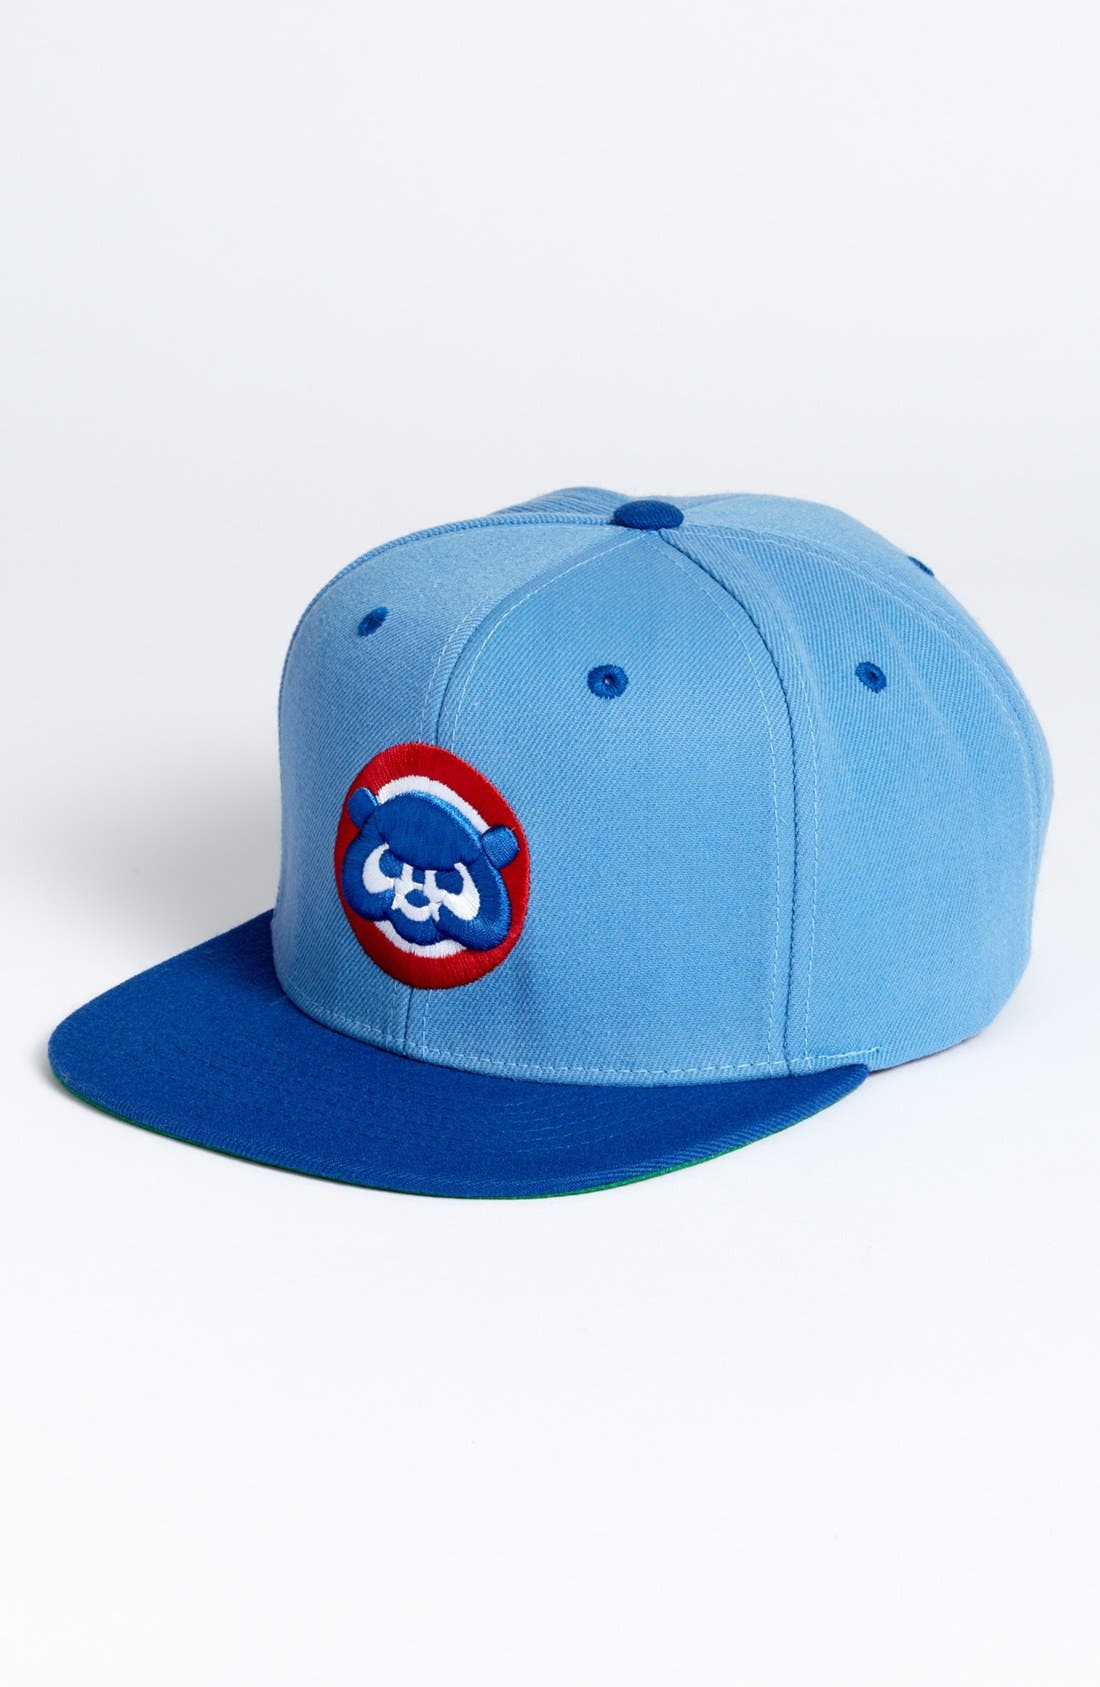 Main Image - American Needle 'Chicago Cubs - Back 2 Front' Snapback Baseball Cap